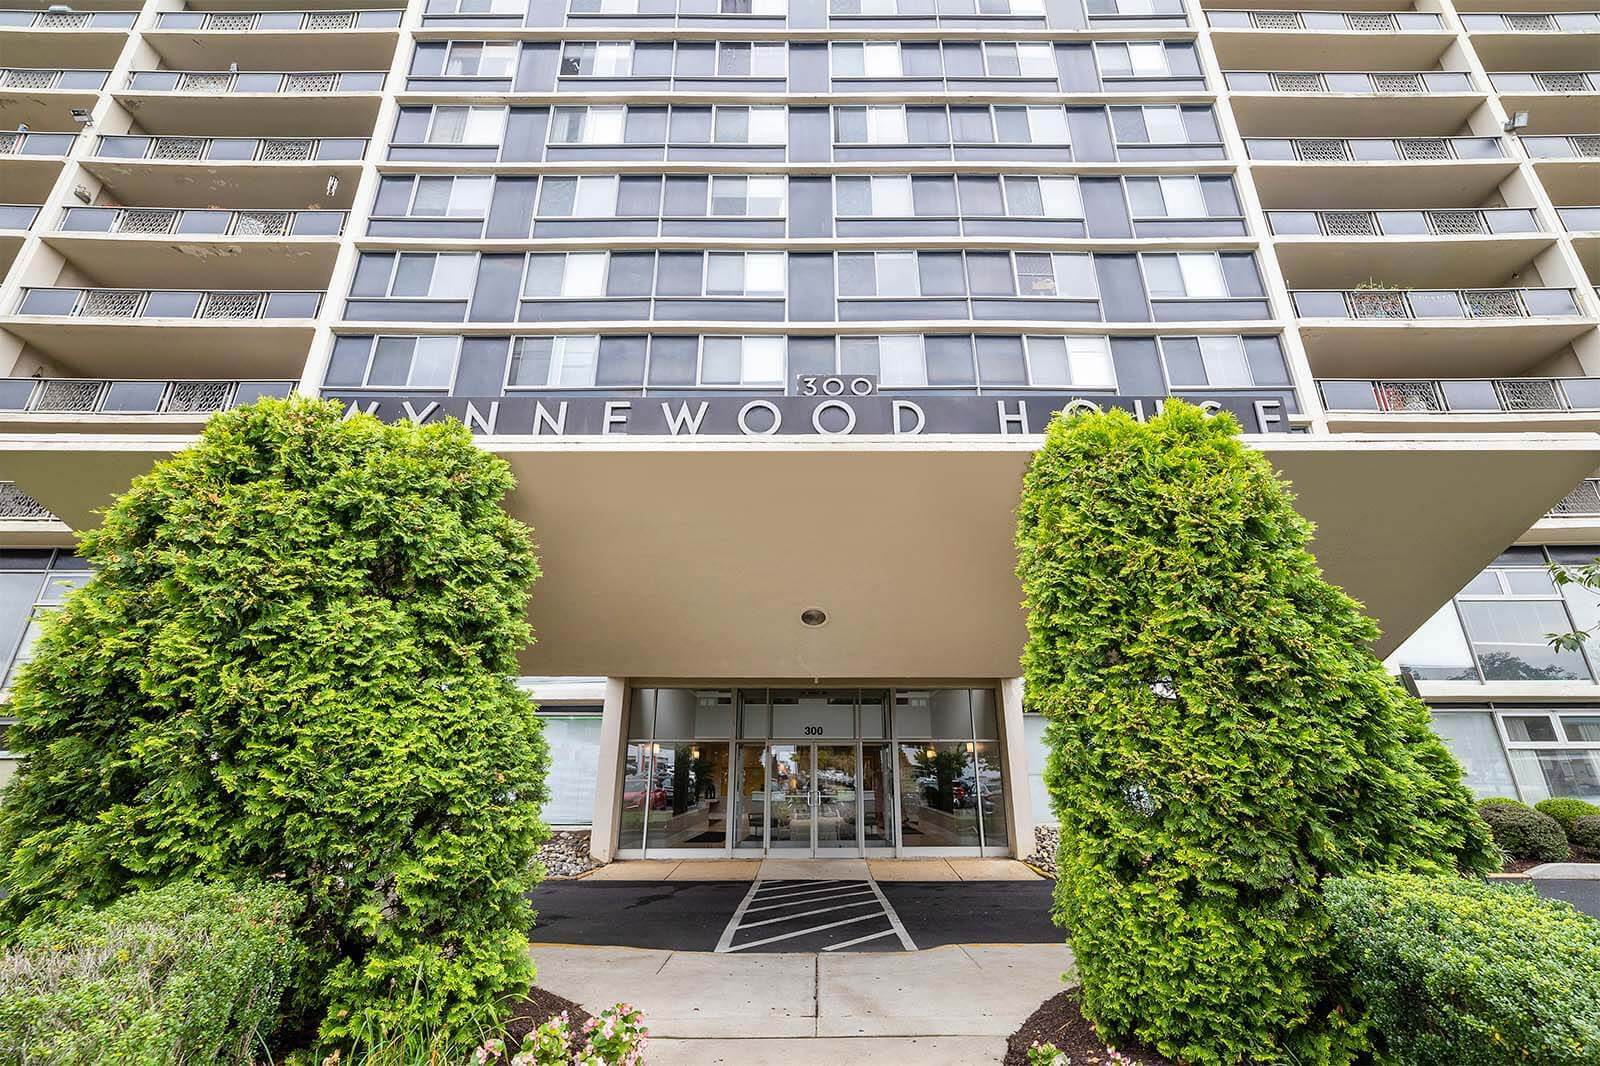 Wynnewood-House-exterior-apartments-business-rental